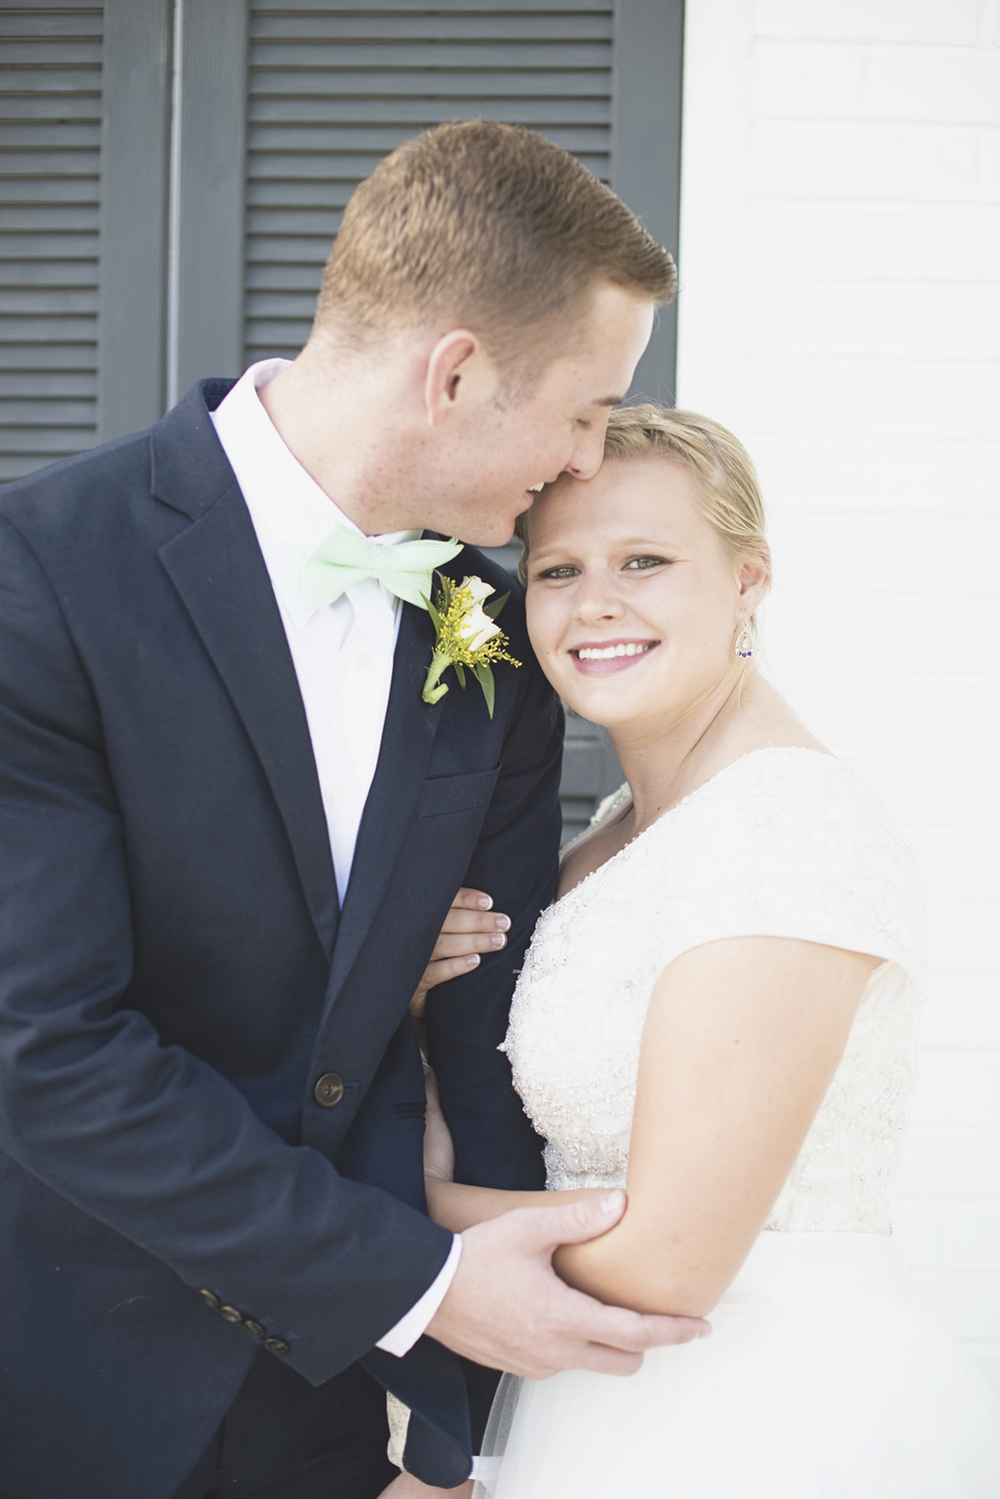 Confederate Hills Recreation Center Wedding | Richmond, Virginia Wedding | Bride and groom portraits